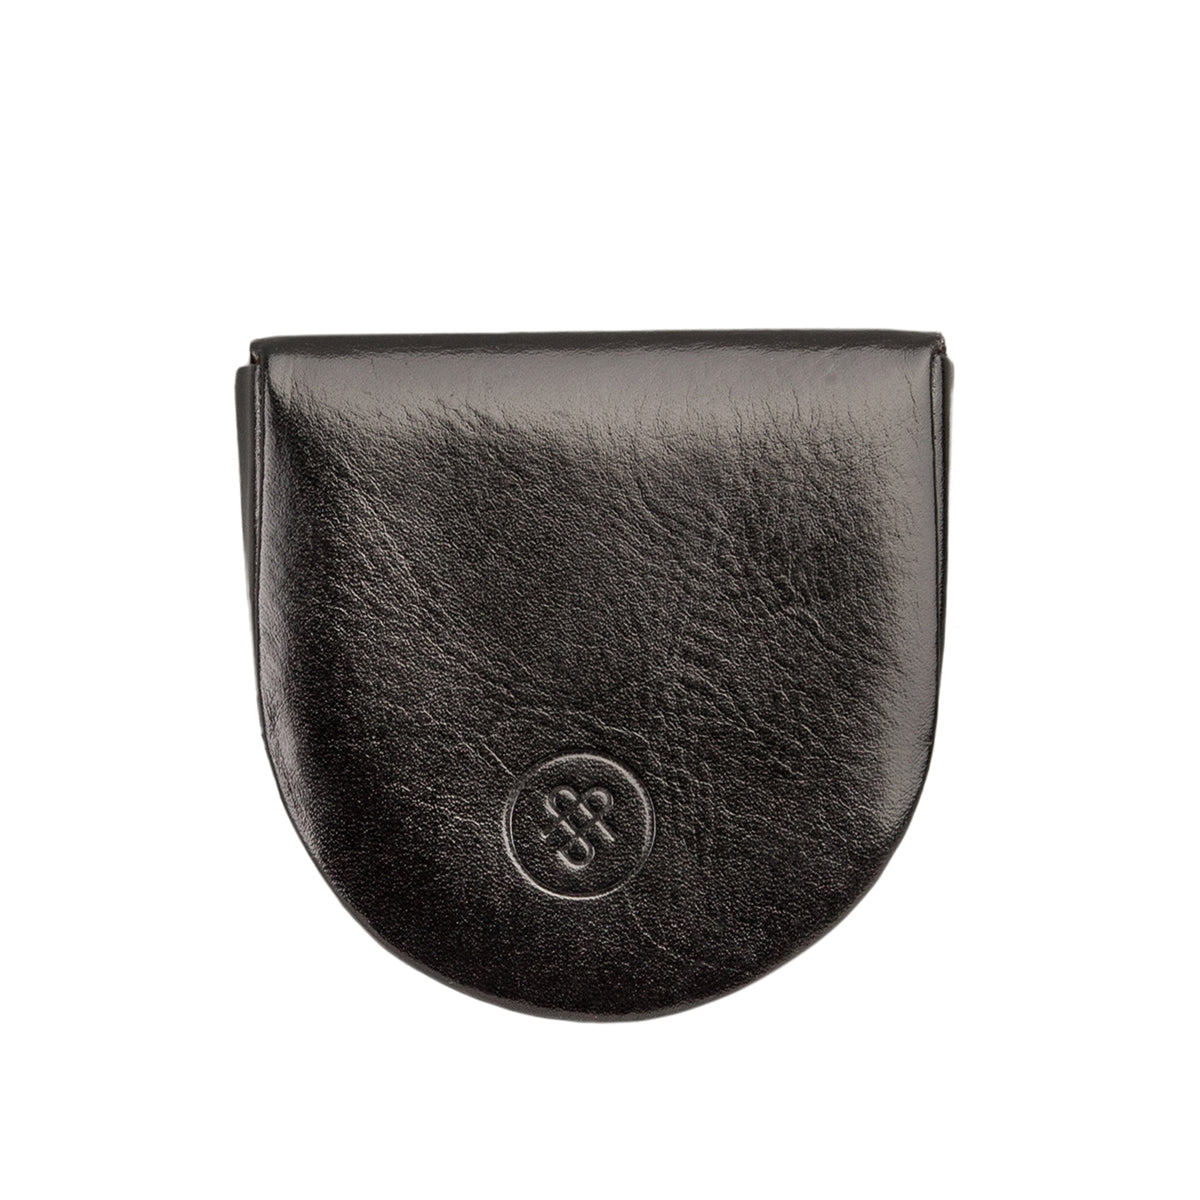 Image 3 of the 'Savino' Black Veg-Tanned Leather Coin Wallet